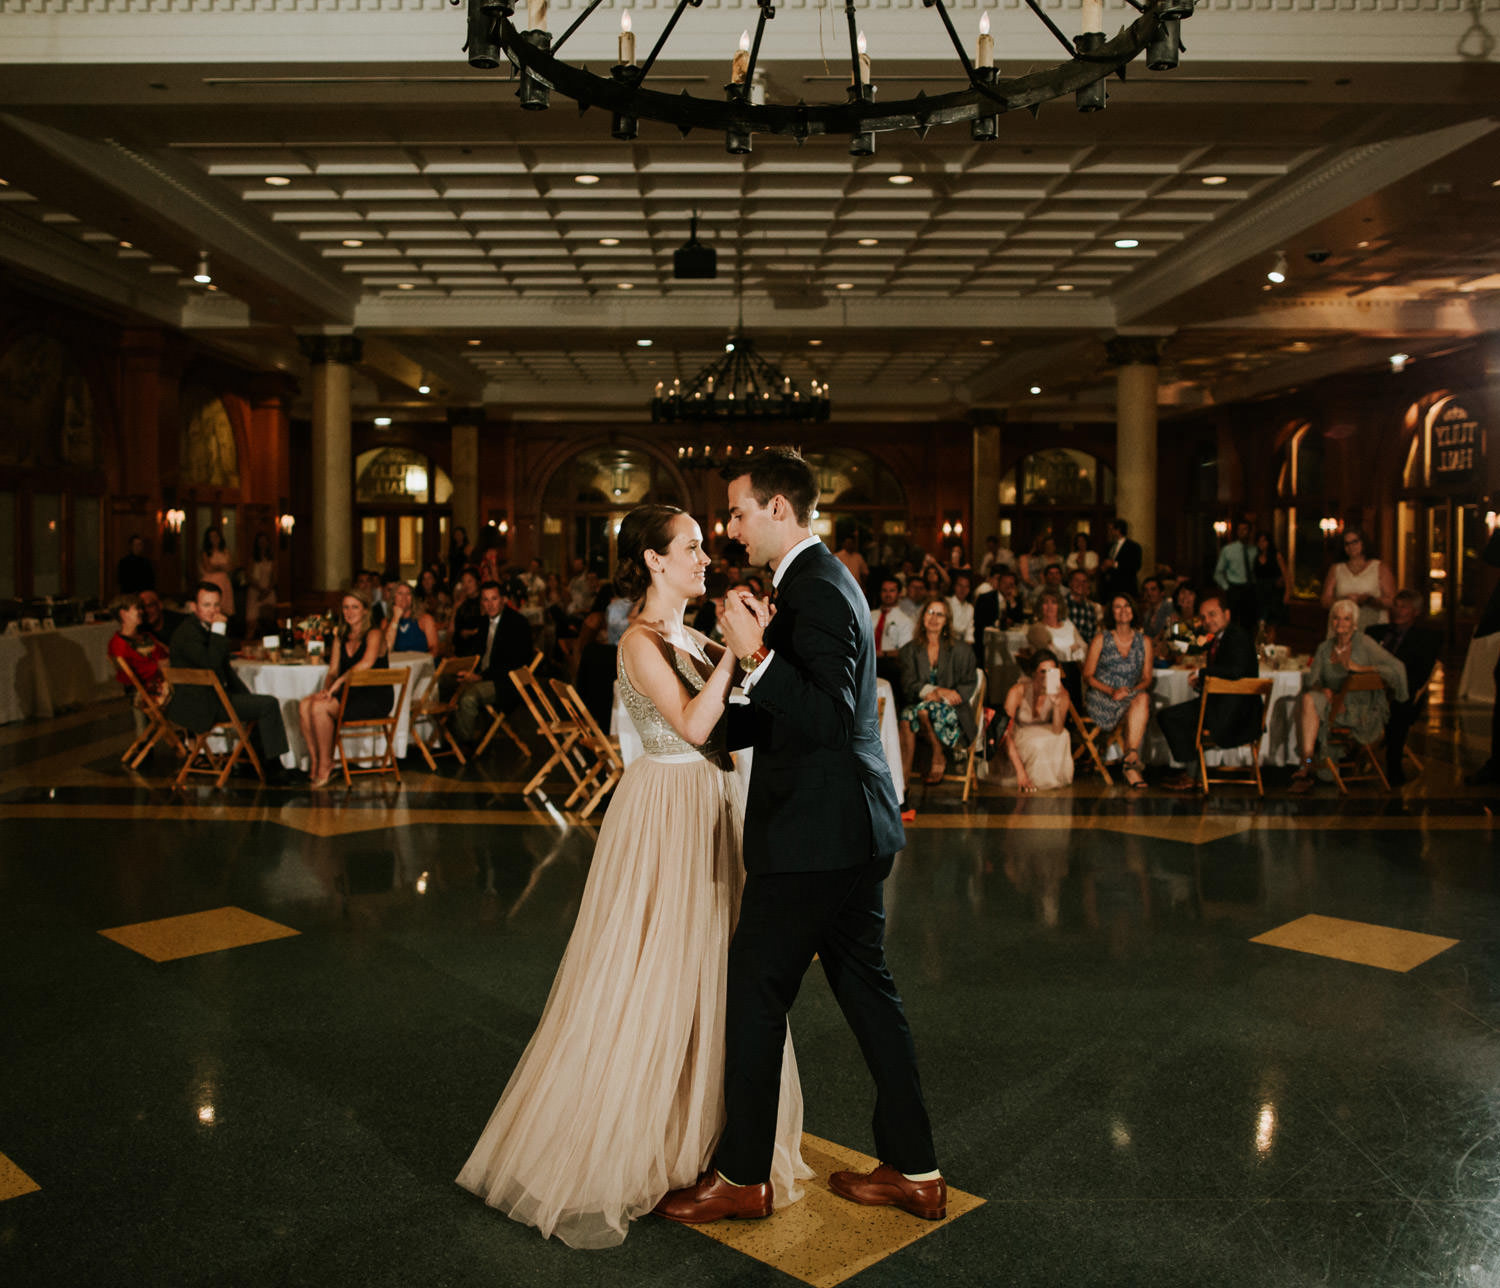 Pictures of the bride and groom dancing for the first time at Saint Ignatius College Prep